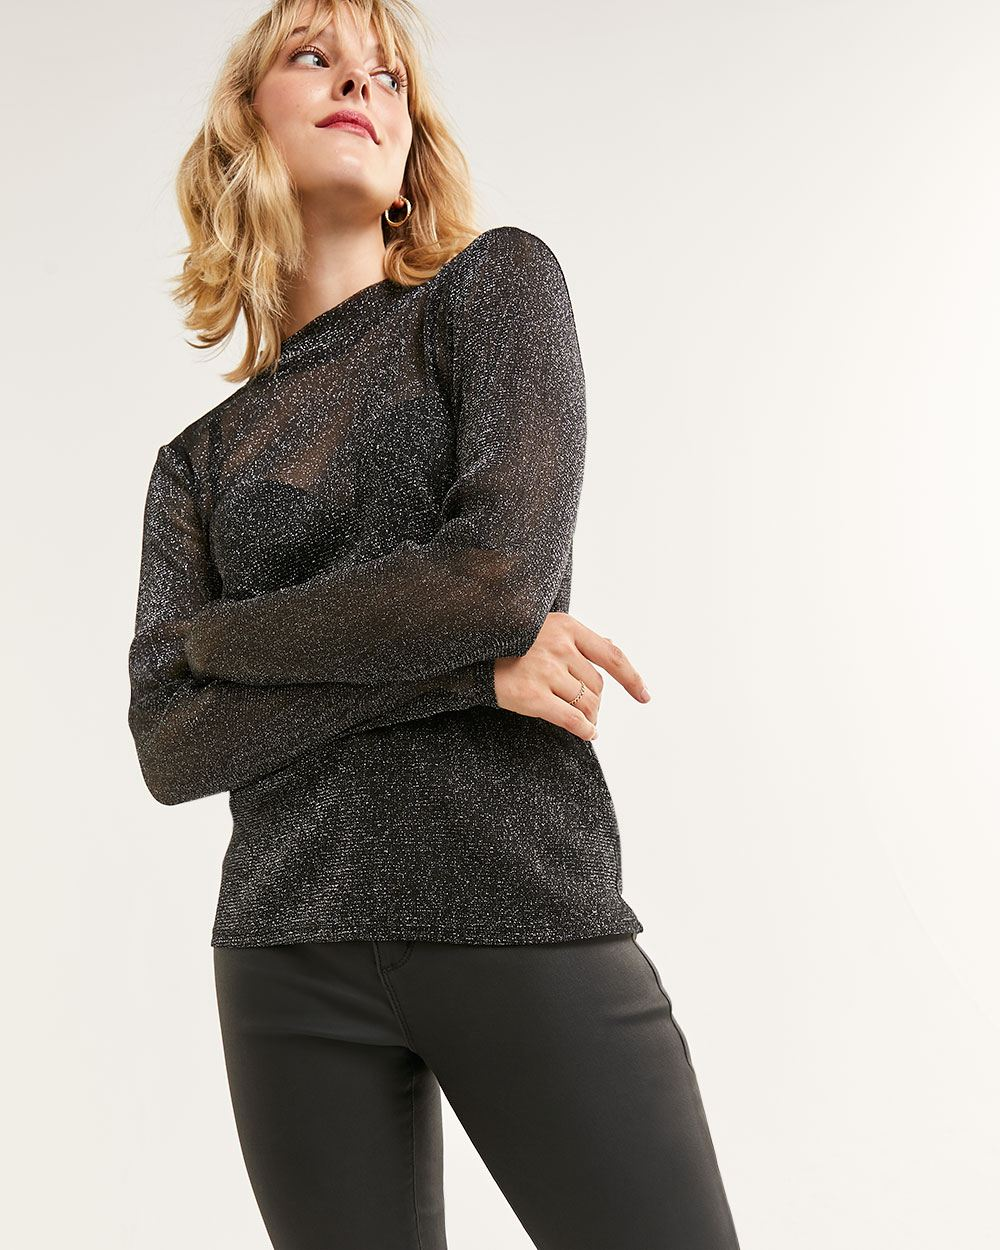 Long Sleeve Mock Neck Shimmer Mesh Top